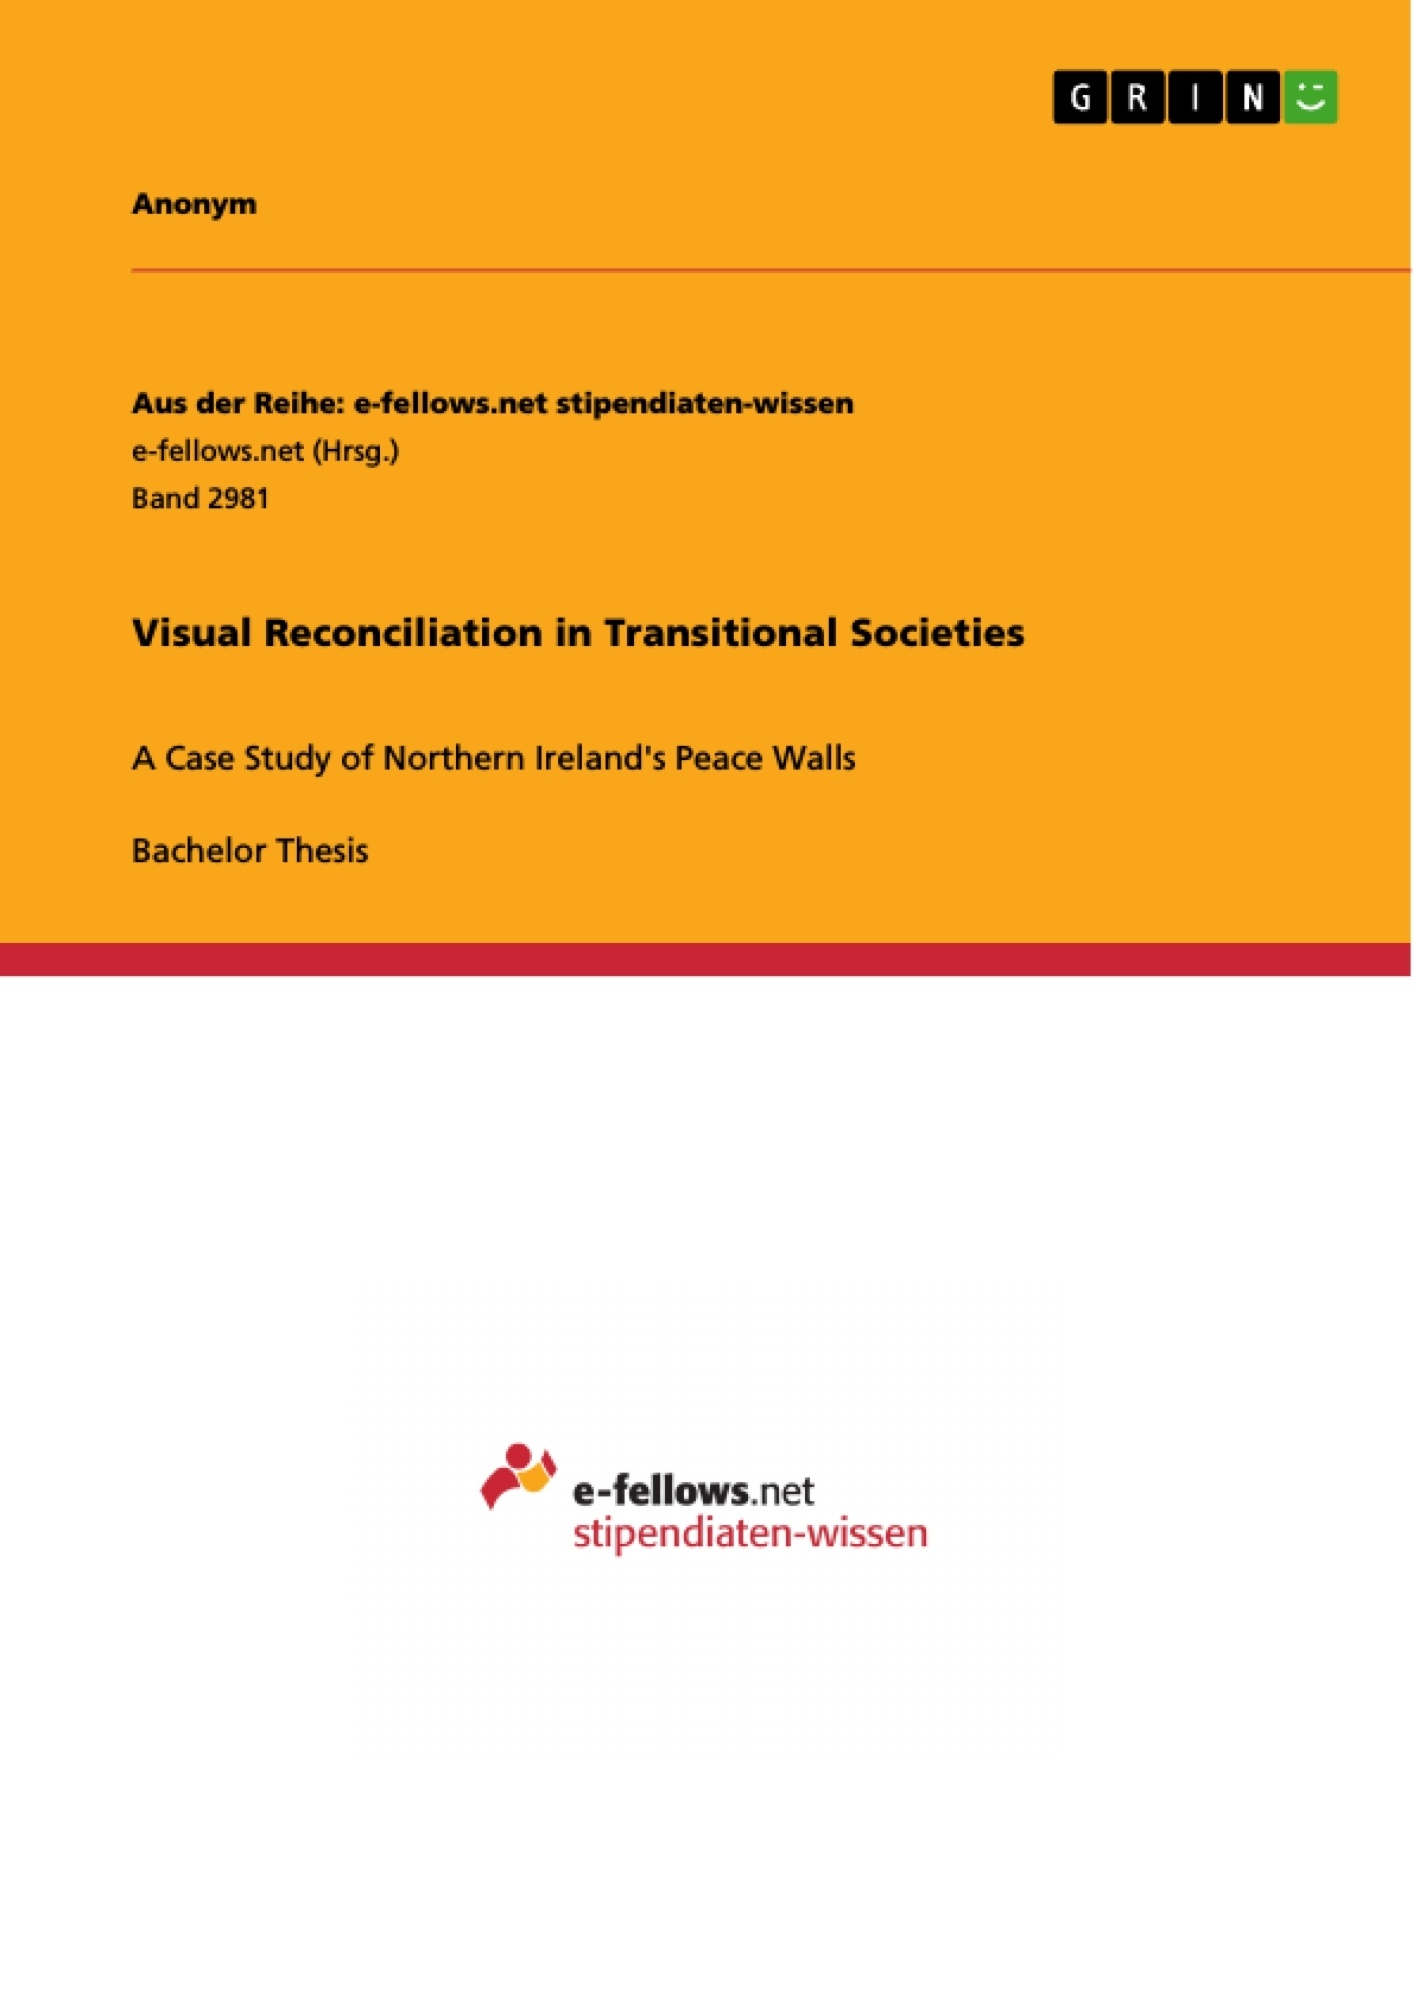 Title: Visual Reconciliation in Transitional Societies